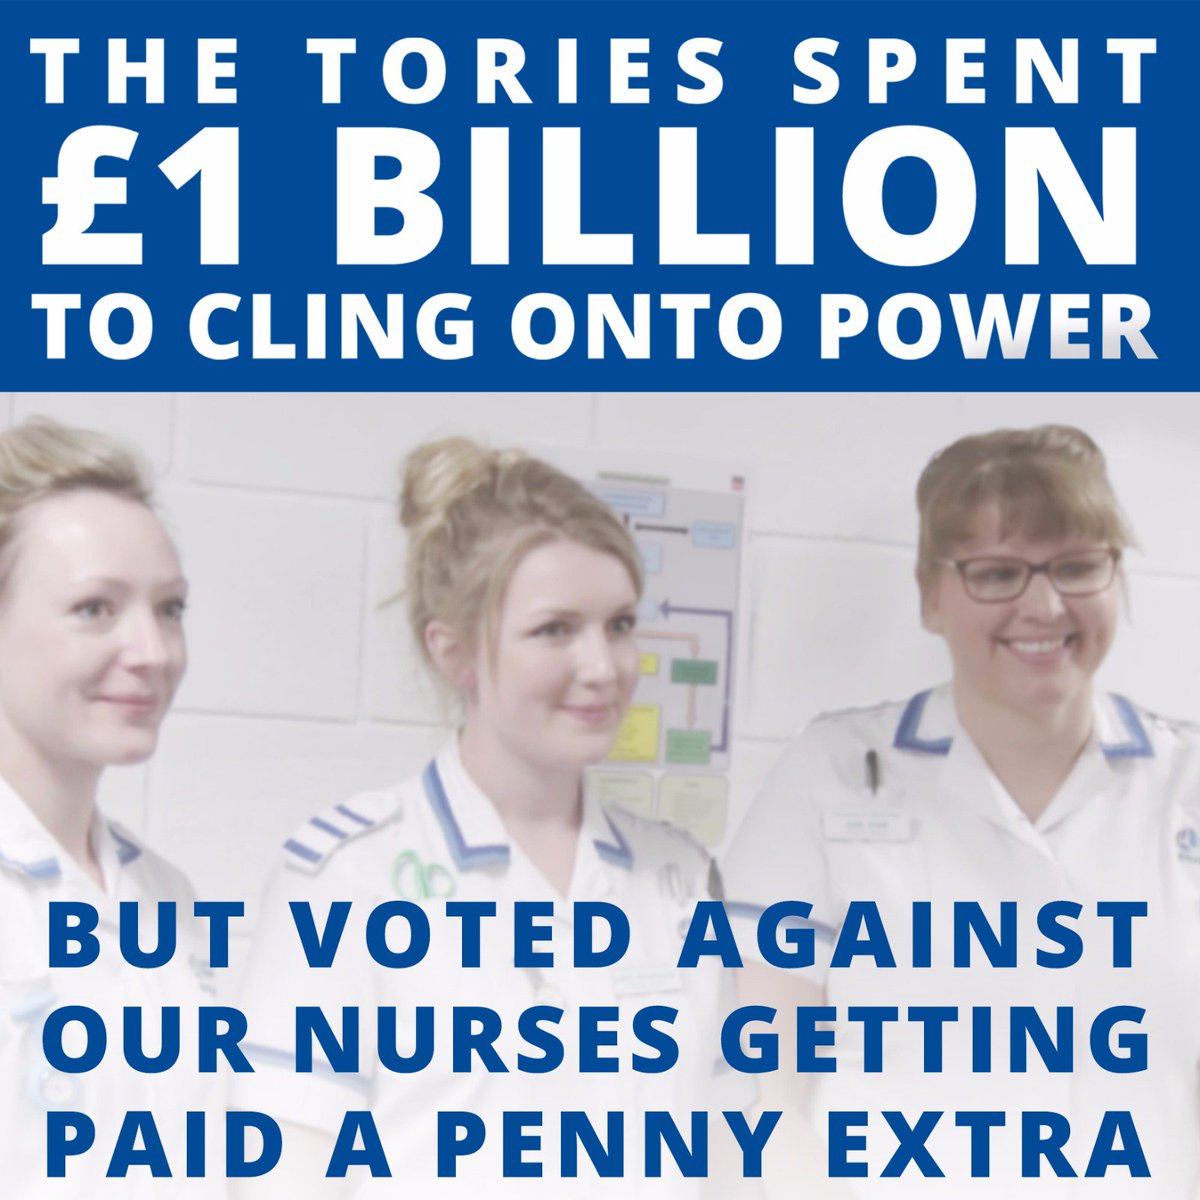 Monday, the @Conservatives spent £1 billion to cling onto power. Yesterday, they voted against nurses getting paid a penny extra #NastyParty